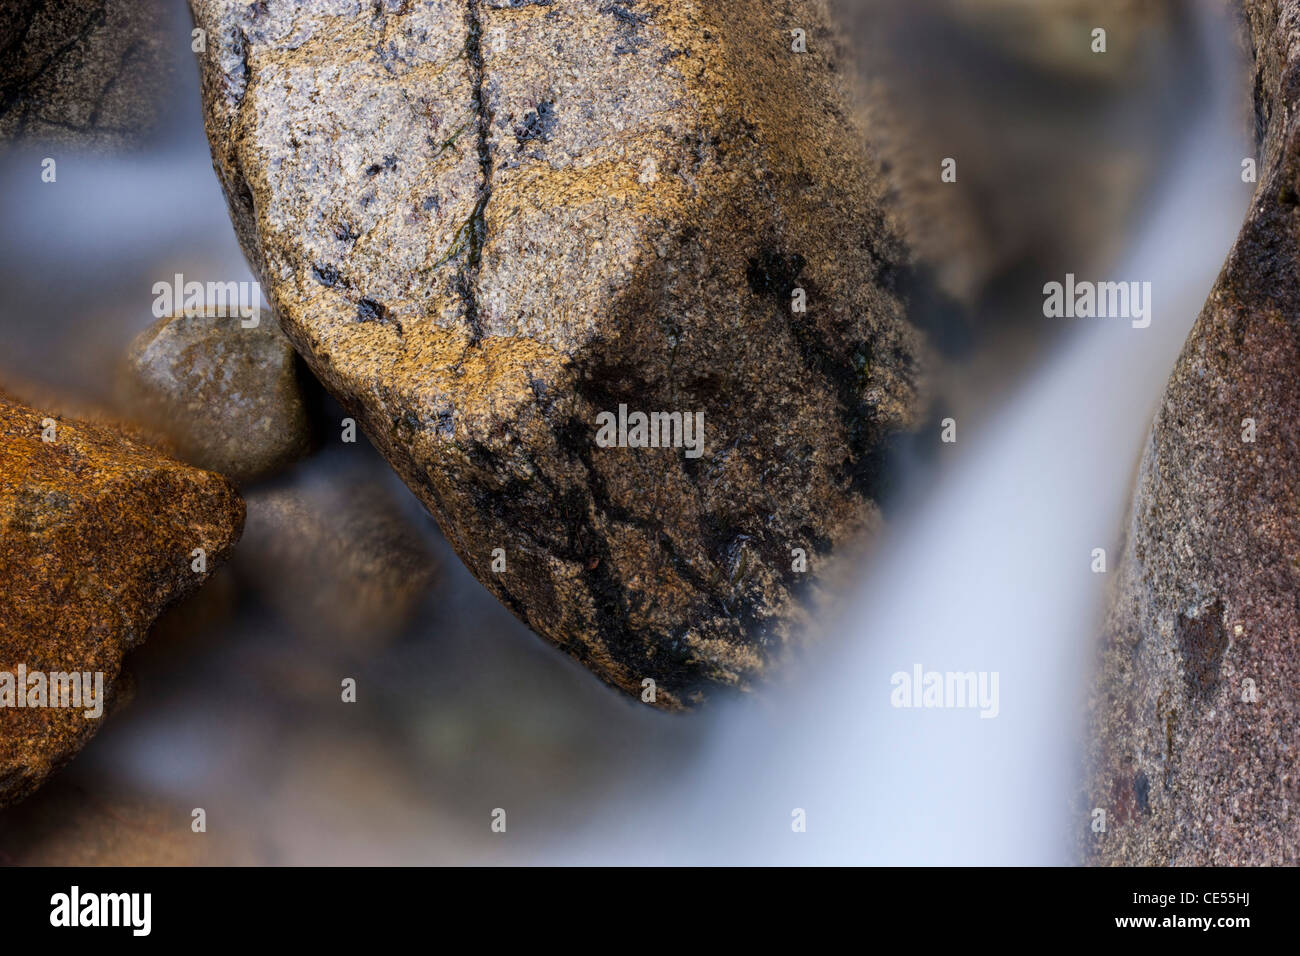 Close up of rocks and running water, Tatra Mountains, Slovakia, Europe. Autumn (October) 2011. - Stock Image